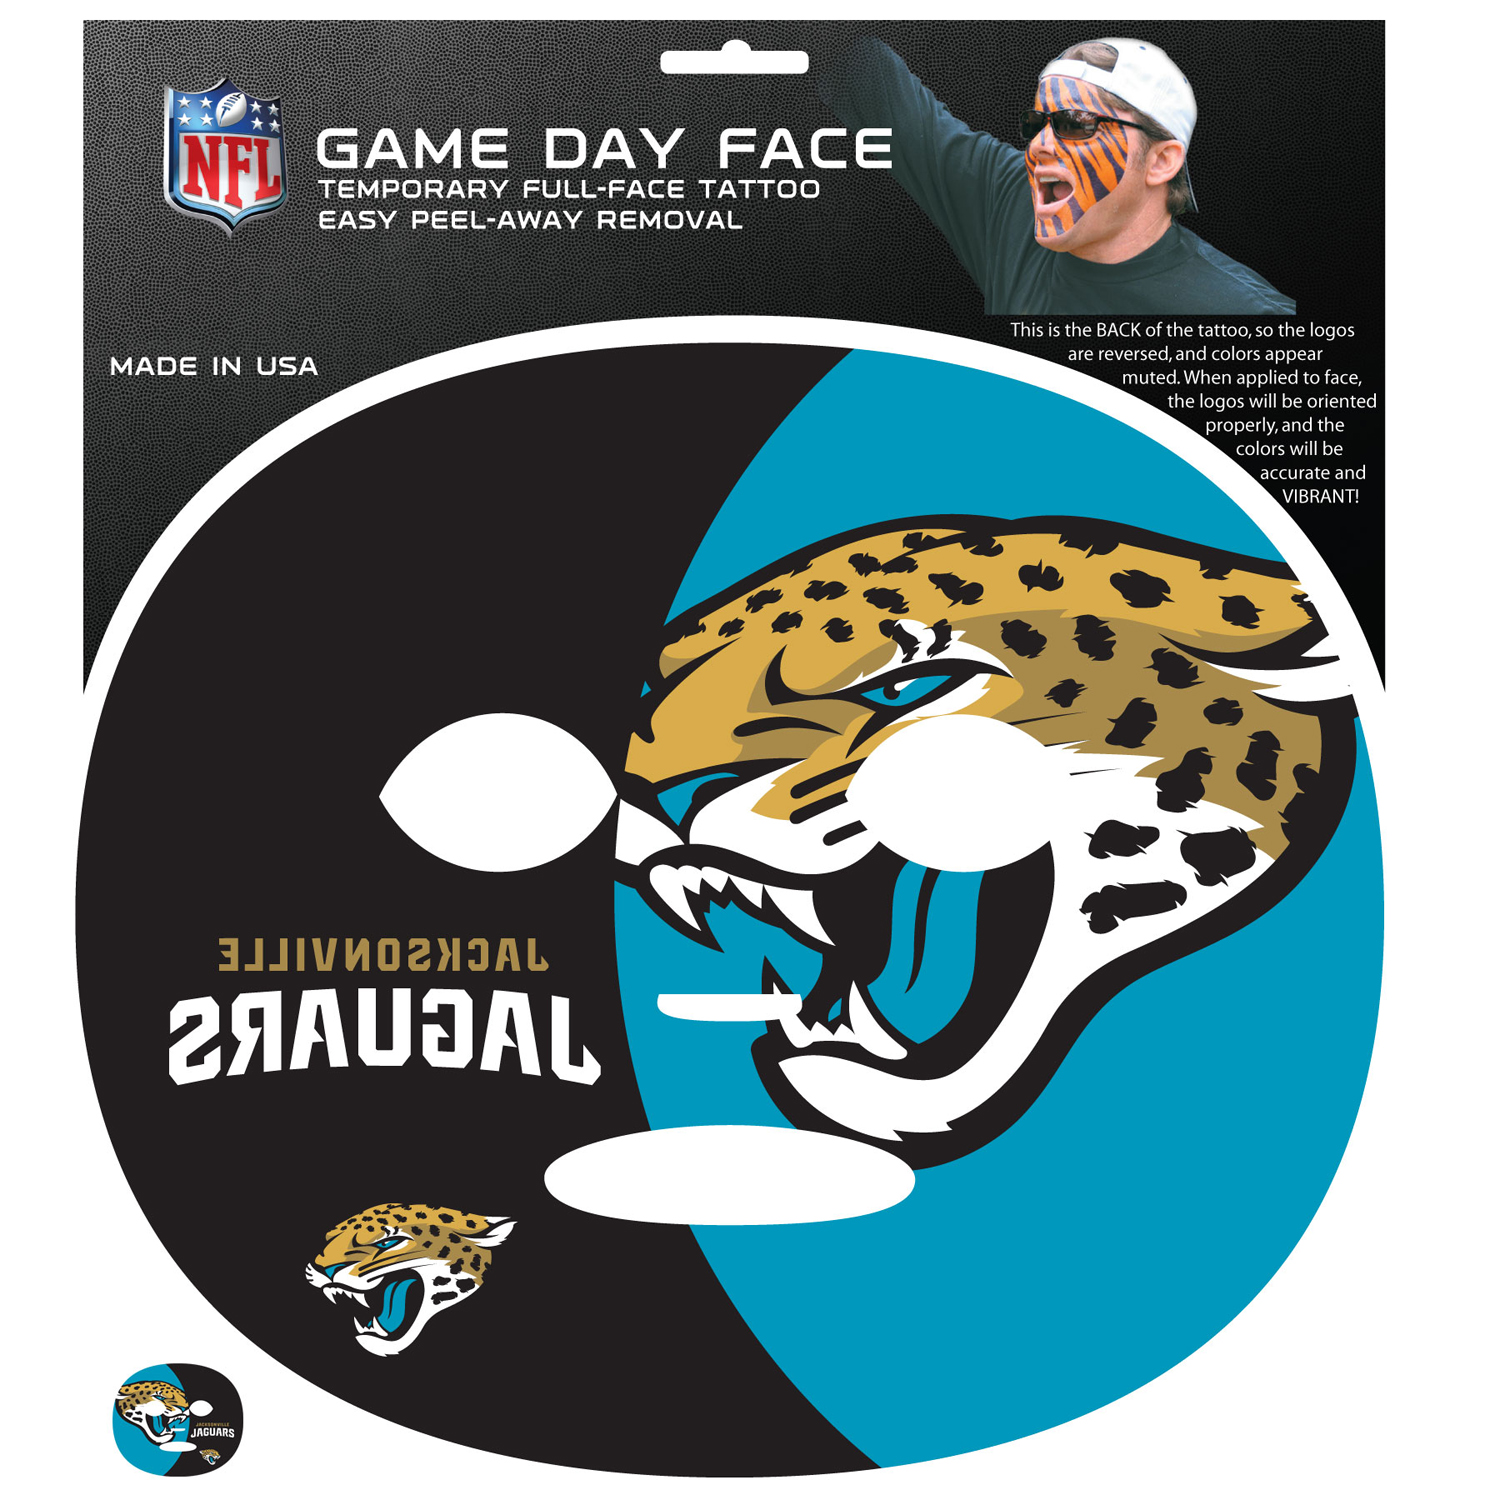 Jacksonville Jaguars Game Face Temporary Tattoo - No better way to show your Jacksonville Jaguars pride than by painting your face. Siskiyou's Game Day Face Temporary Tattoo isn't your typical face paint. It is a water based application that doesn't smudge, smear or sweat off  while you're wearing it and easily peels off after you're done celebrating your team's big Win! The temporary tattoo is large enough to trim down to fit your face.  Our Game Day Face Temporary Tattoo's are fun for fans of all ages. You may have seen our product before,  these are the same Temporary Face Tattoos as pitched on ABC's Shark Tank.